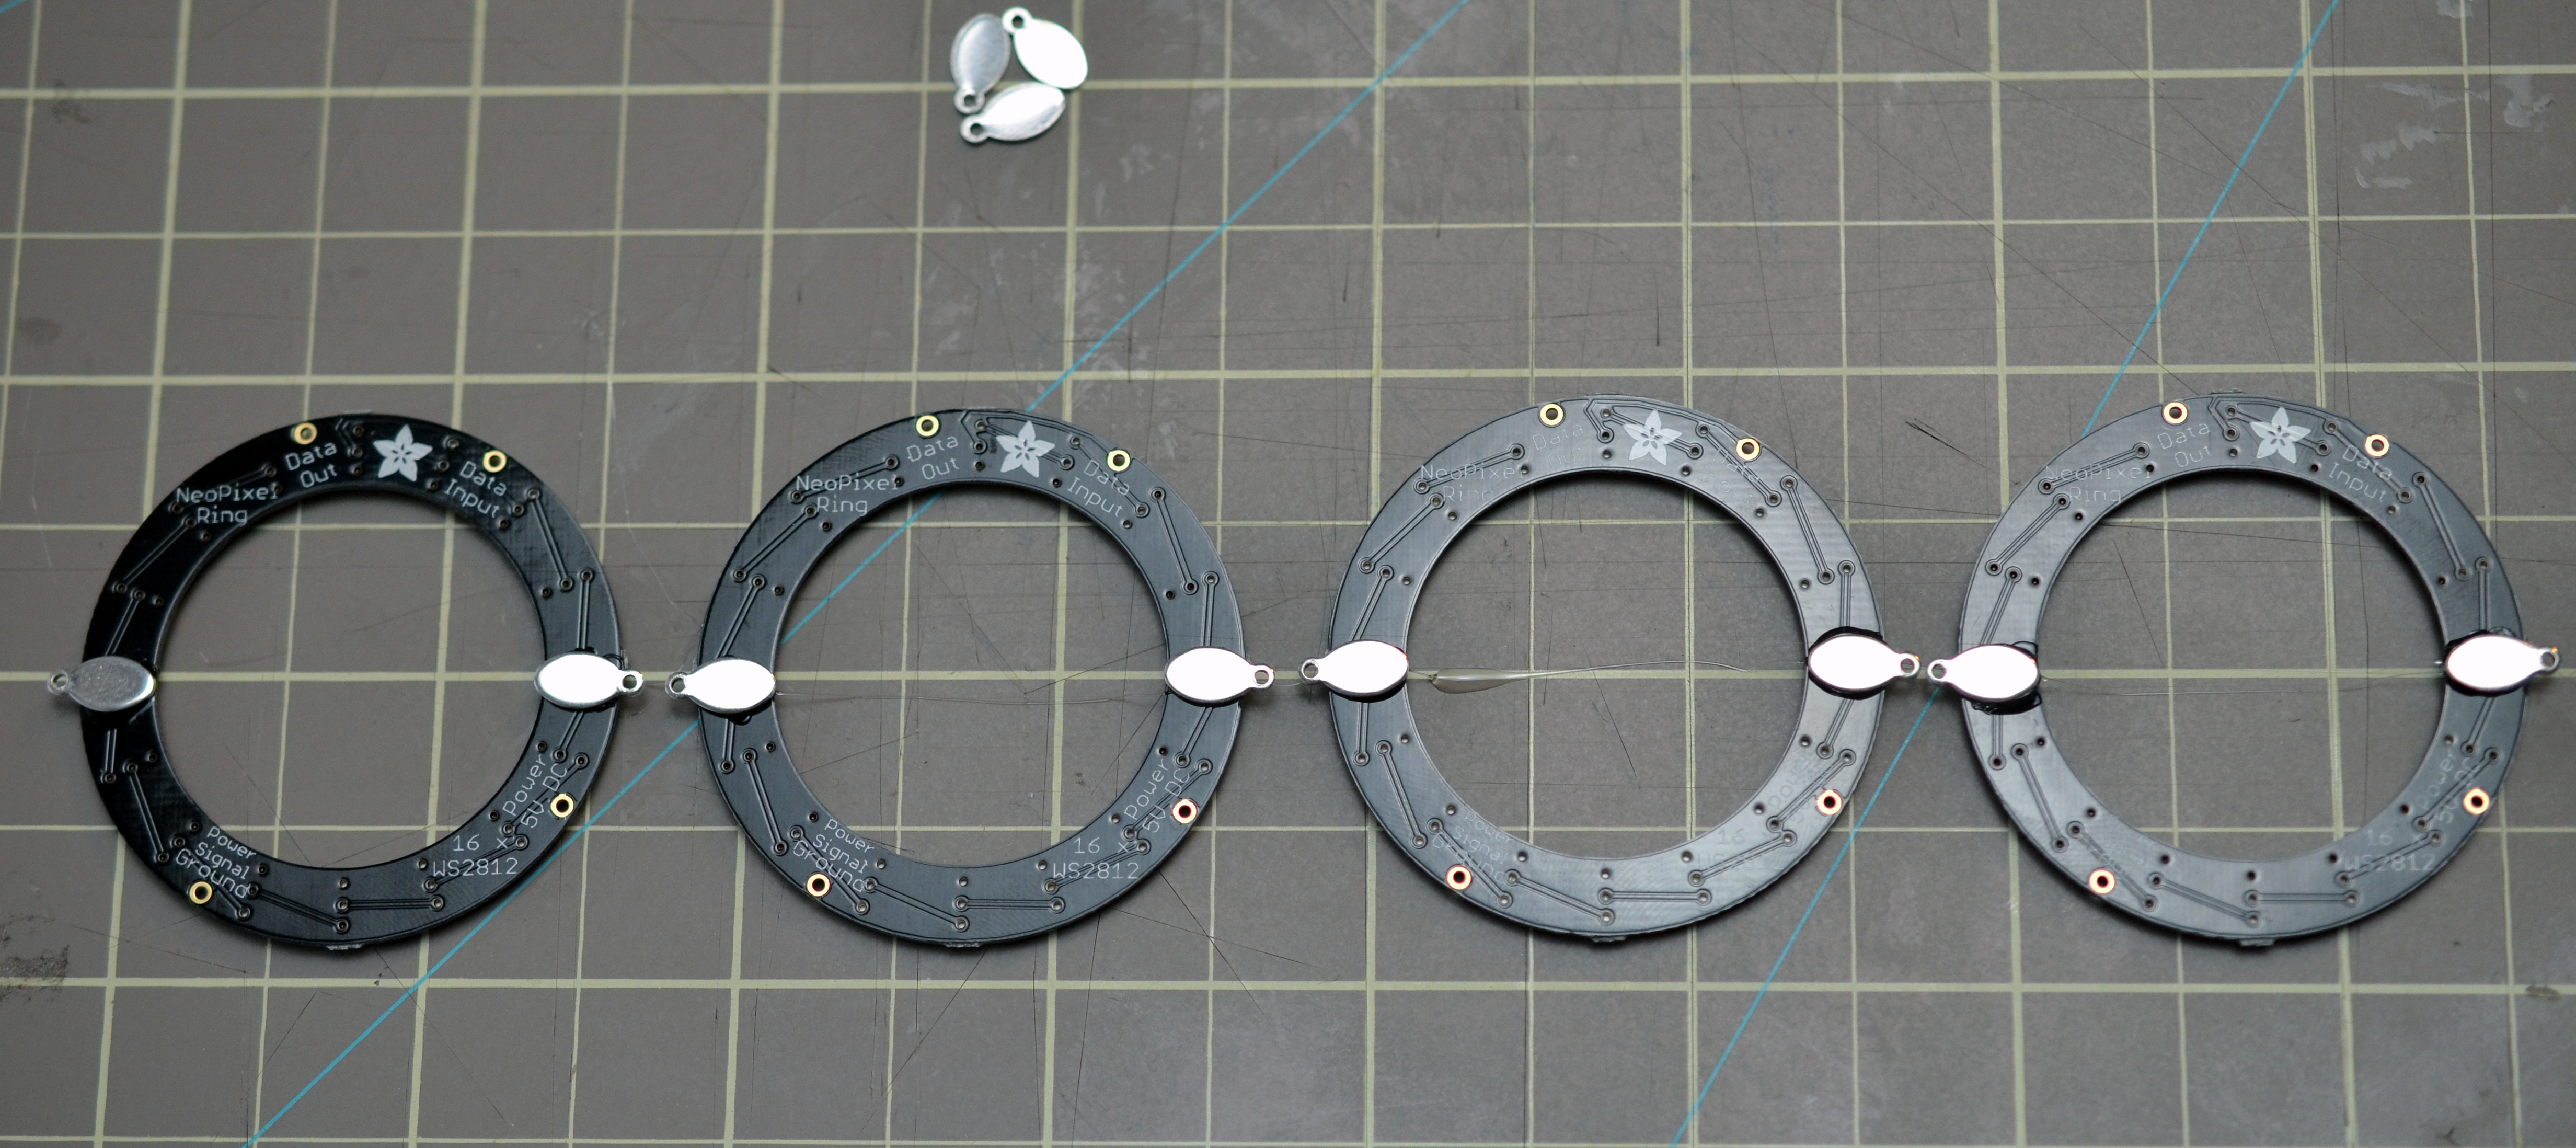 flora_neopixel-bangle-bracelet-00.jpg